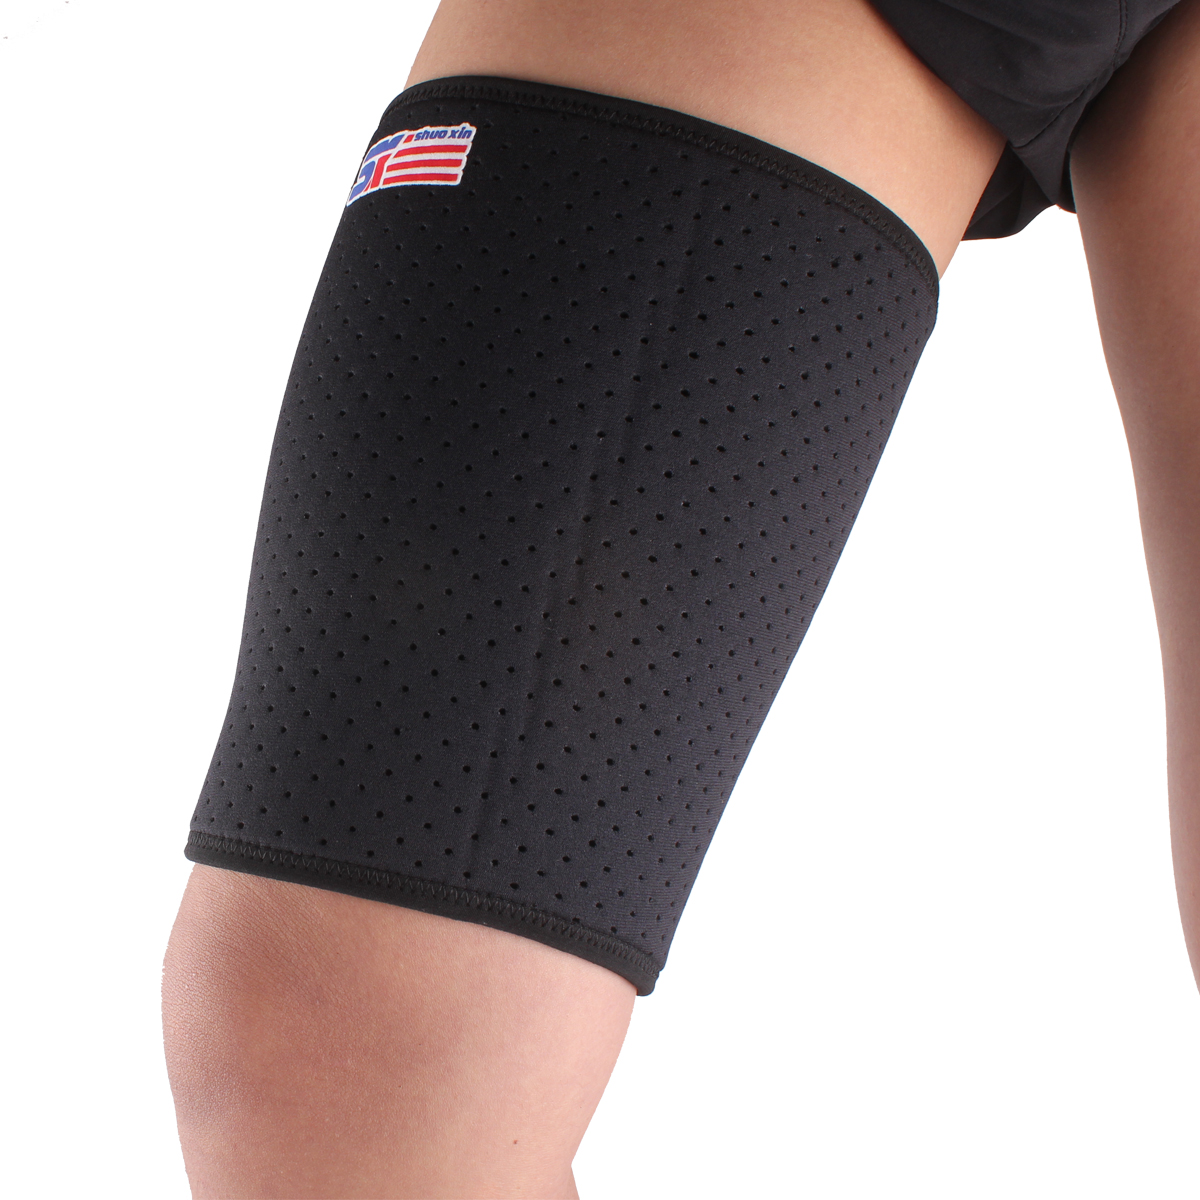 ShuoXin SX650 Sports Fitness Gym Elastic Stretchy Thigh Brace Support Wrap Band - 1PC